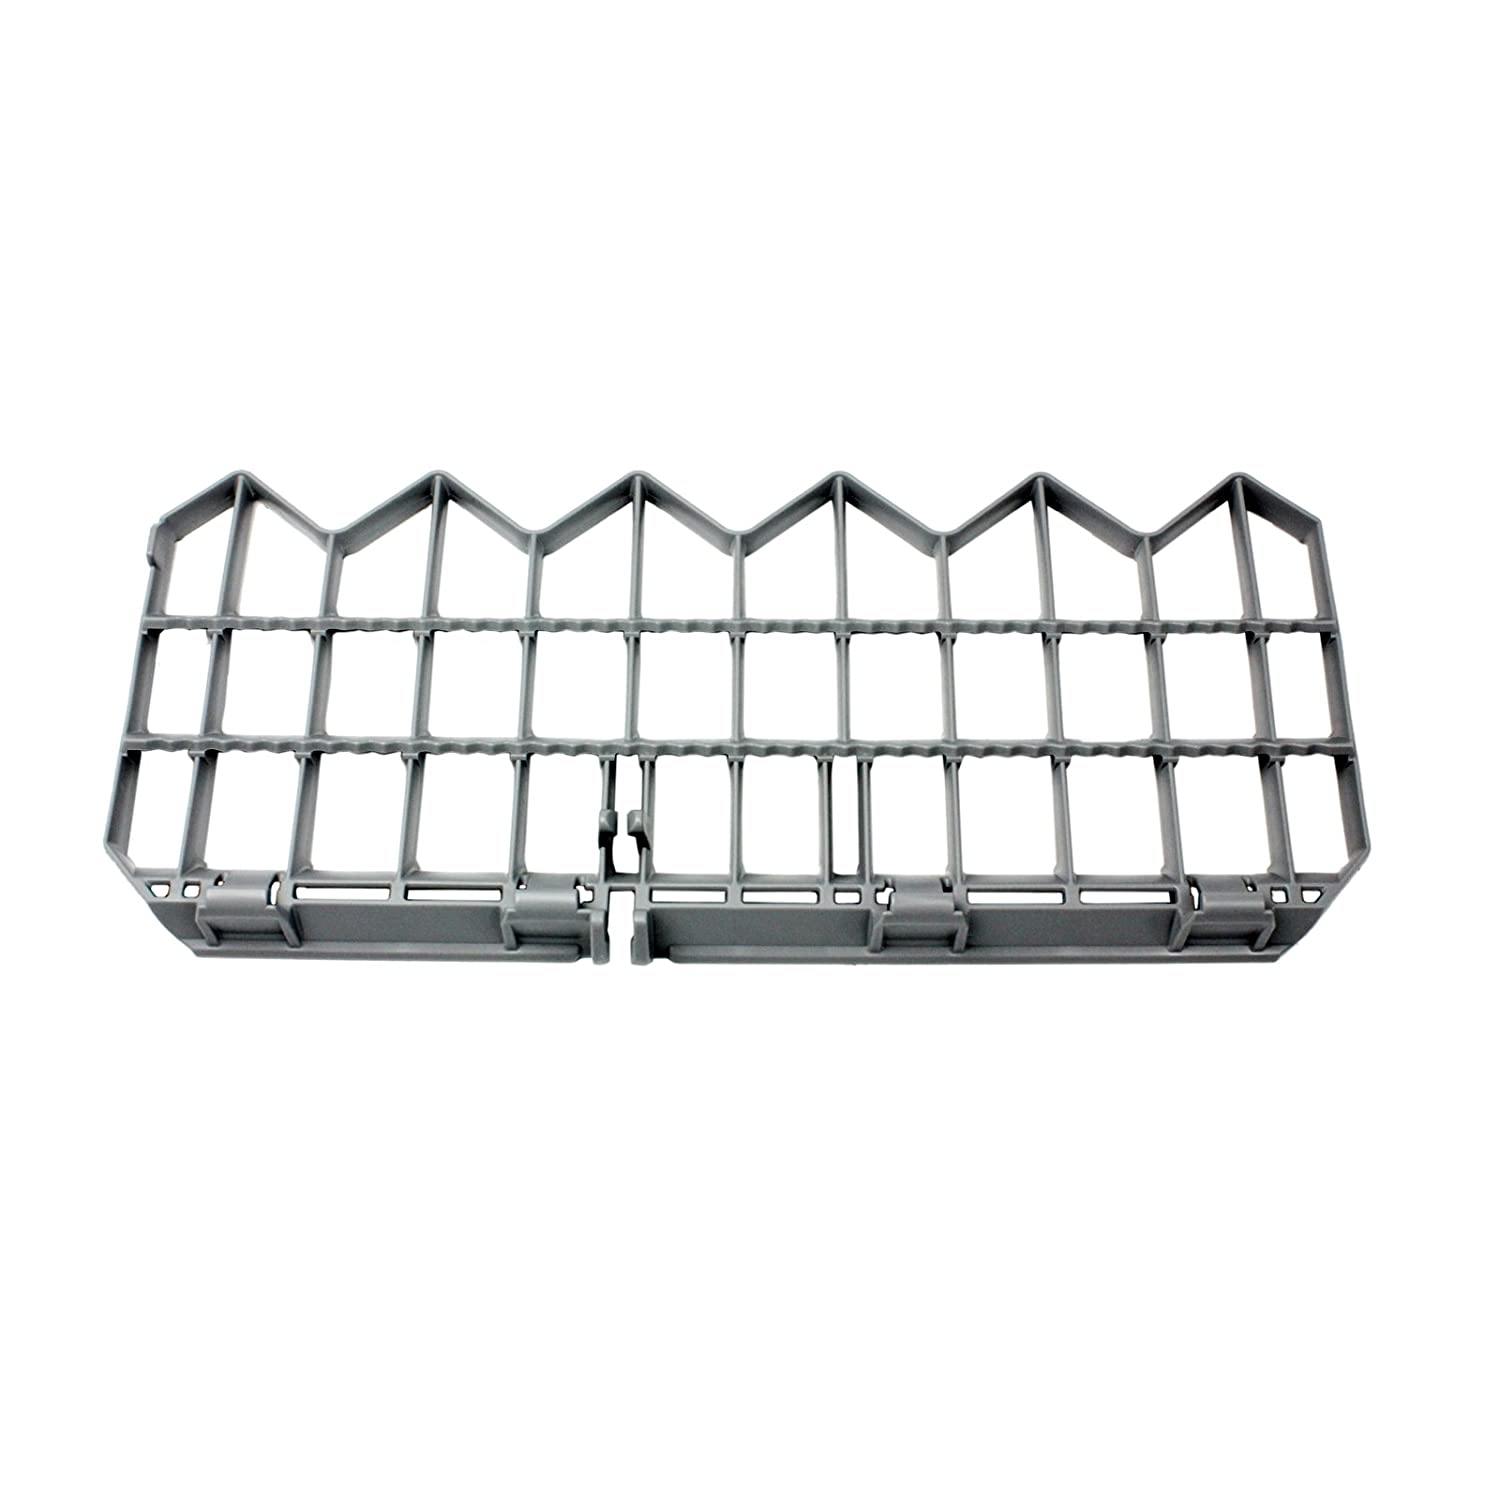 Bosch Dishwasher Upper Rack Cup Rack